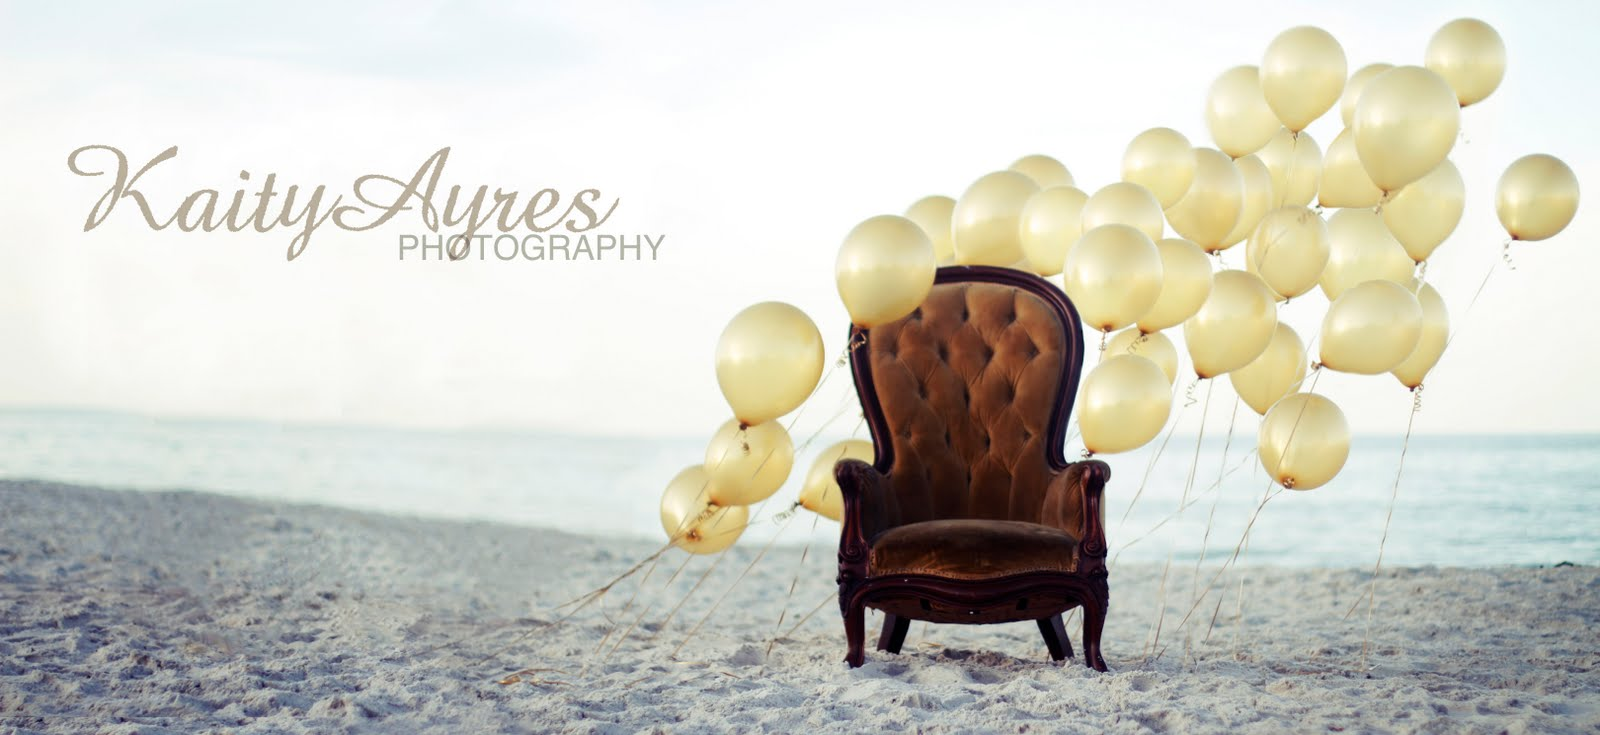 Kaity Ayres Photography